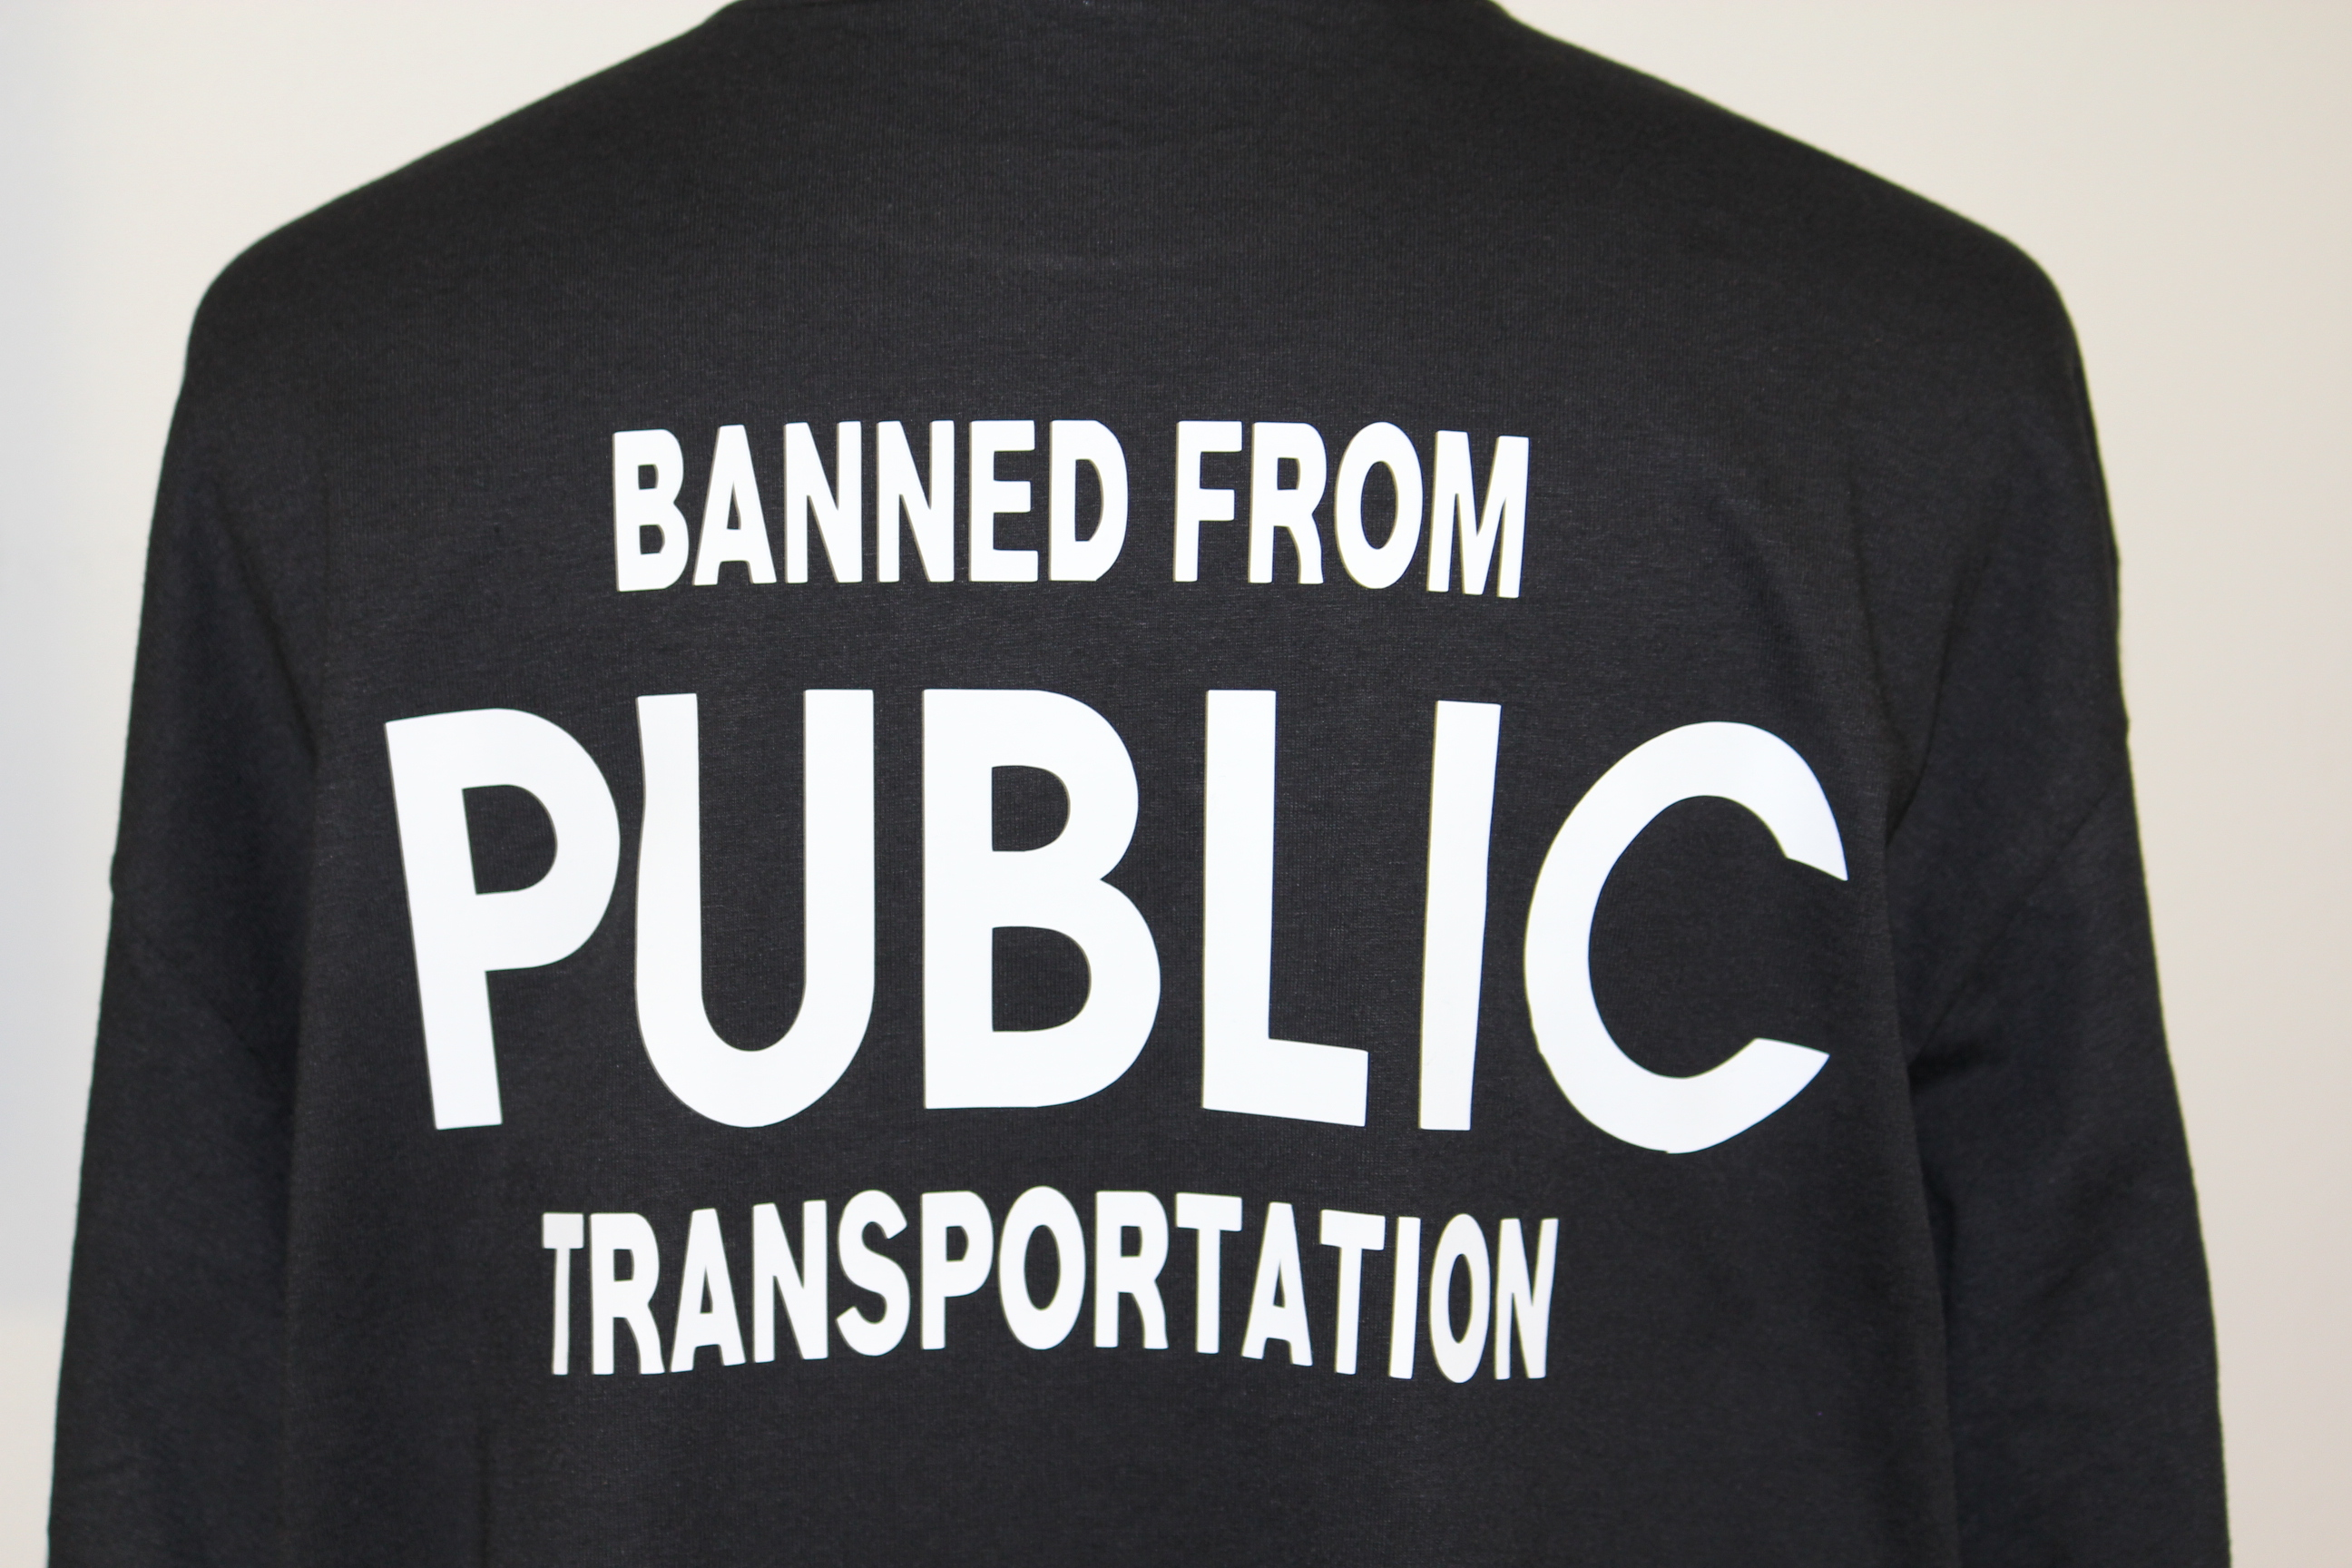 banned-from-public-transportation-t-shirts.jpg